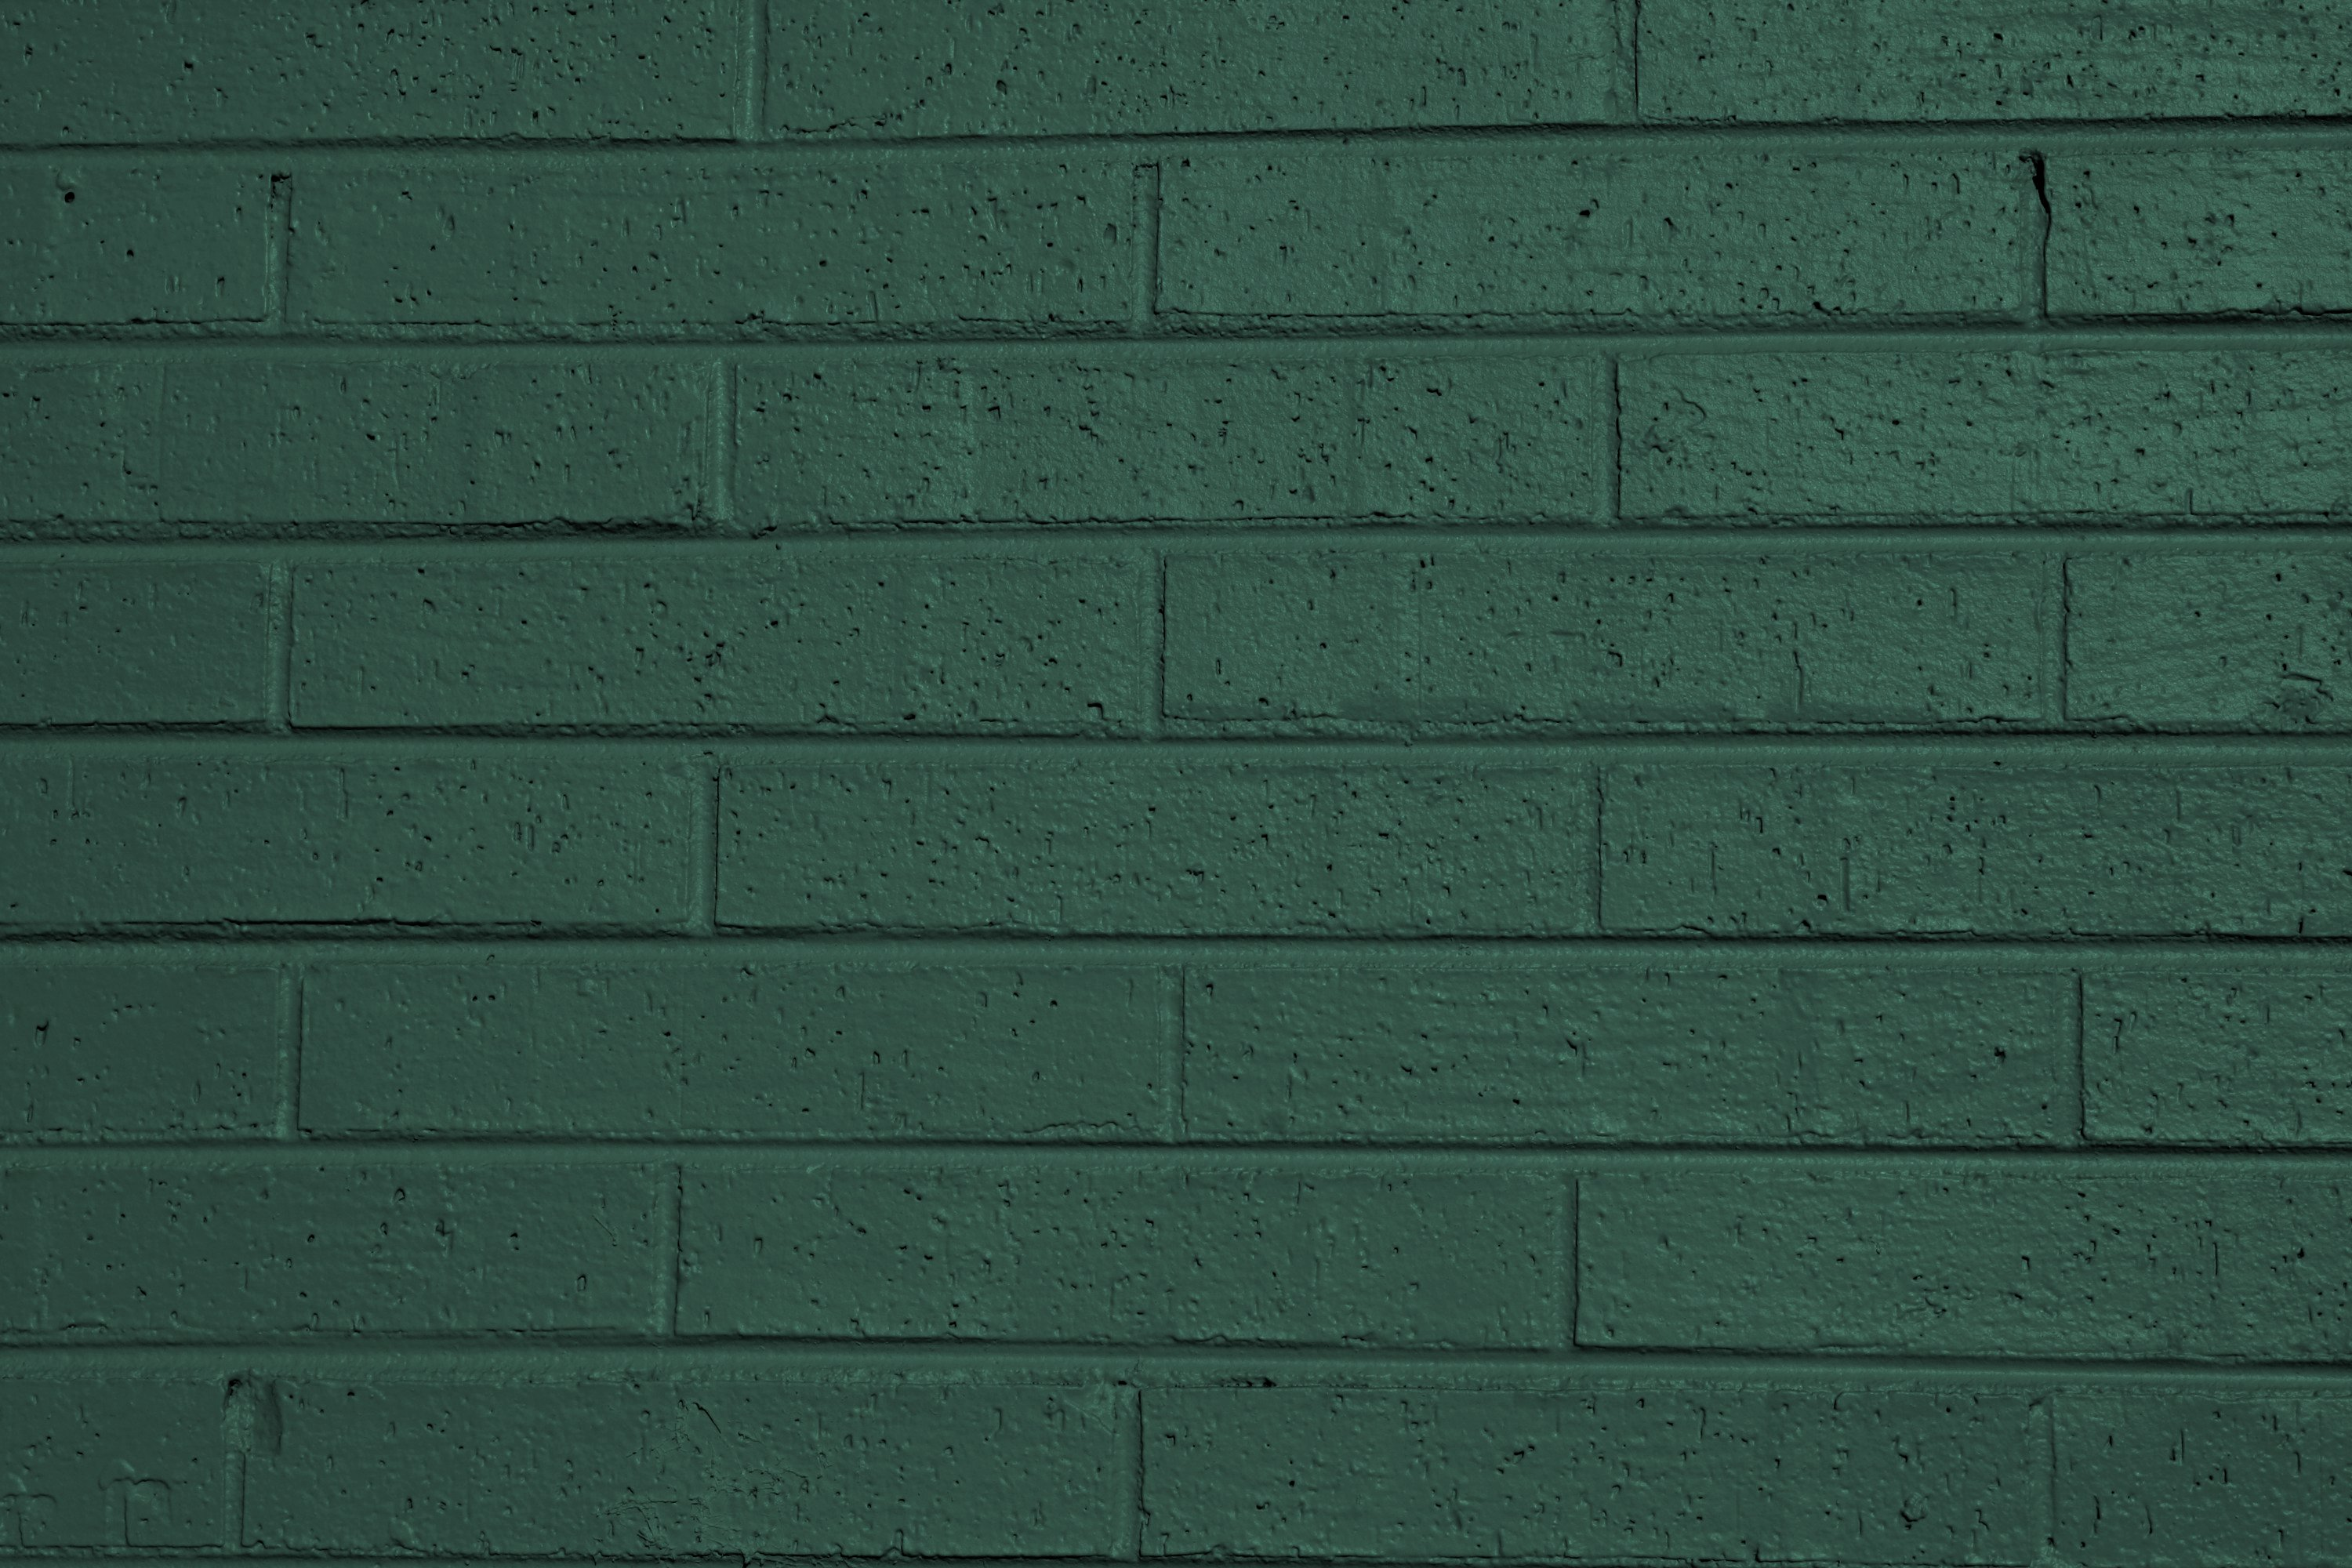 Green Painted Brick Wall Texture Picture Free Photograph